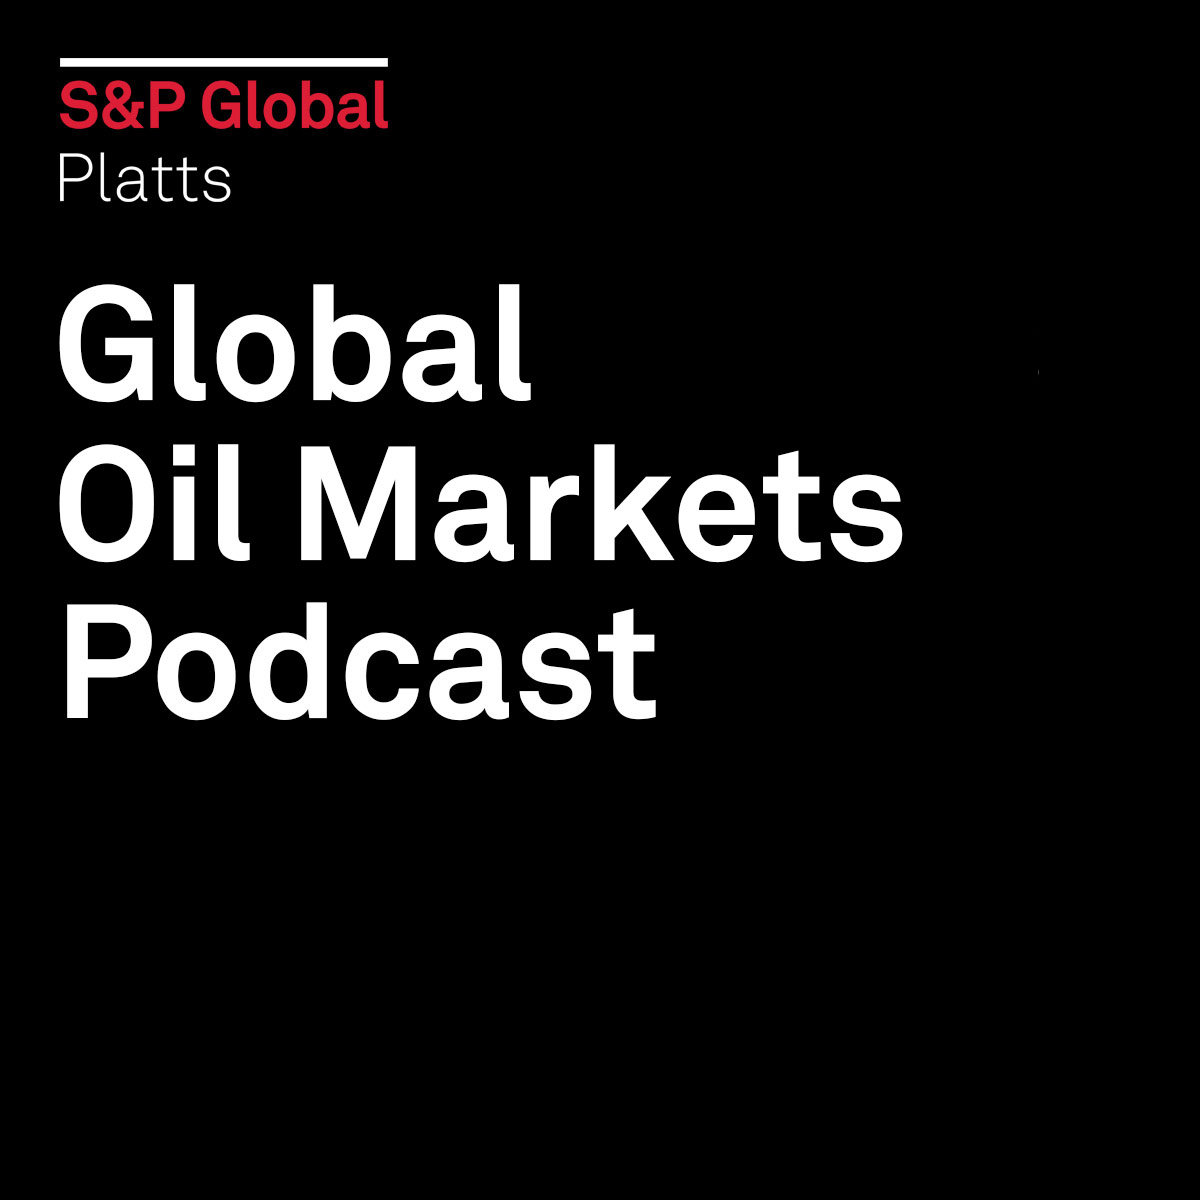 test Twitter Media - 🆕 Global Oil Markets Podcast: @M_Jaipuriyar, @oceana_zhou & Dr Kang Wu on China's #oil demand recovery, import outlook and #peakoil scenarios  🔊 https://t.co/UqoMwO13mR (16:39)  #OOTT #oildemand #Chinaoil https://t.co/LEw7czF0C3